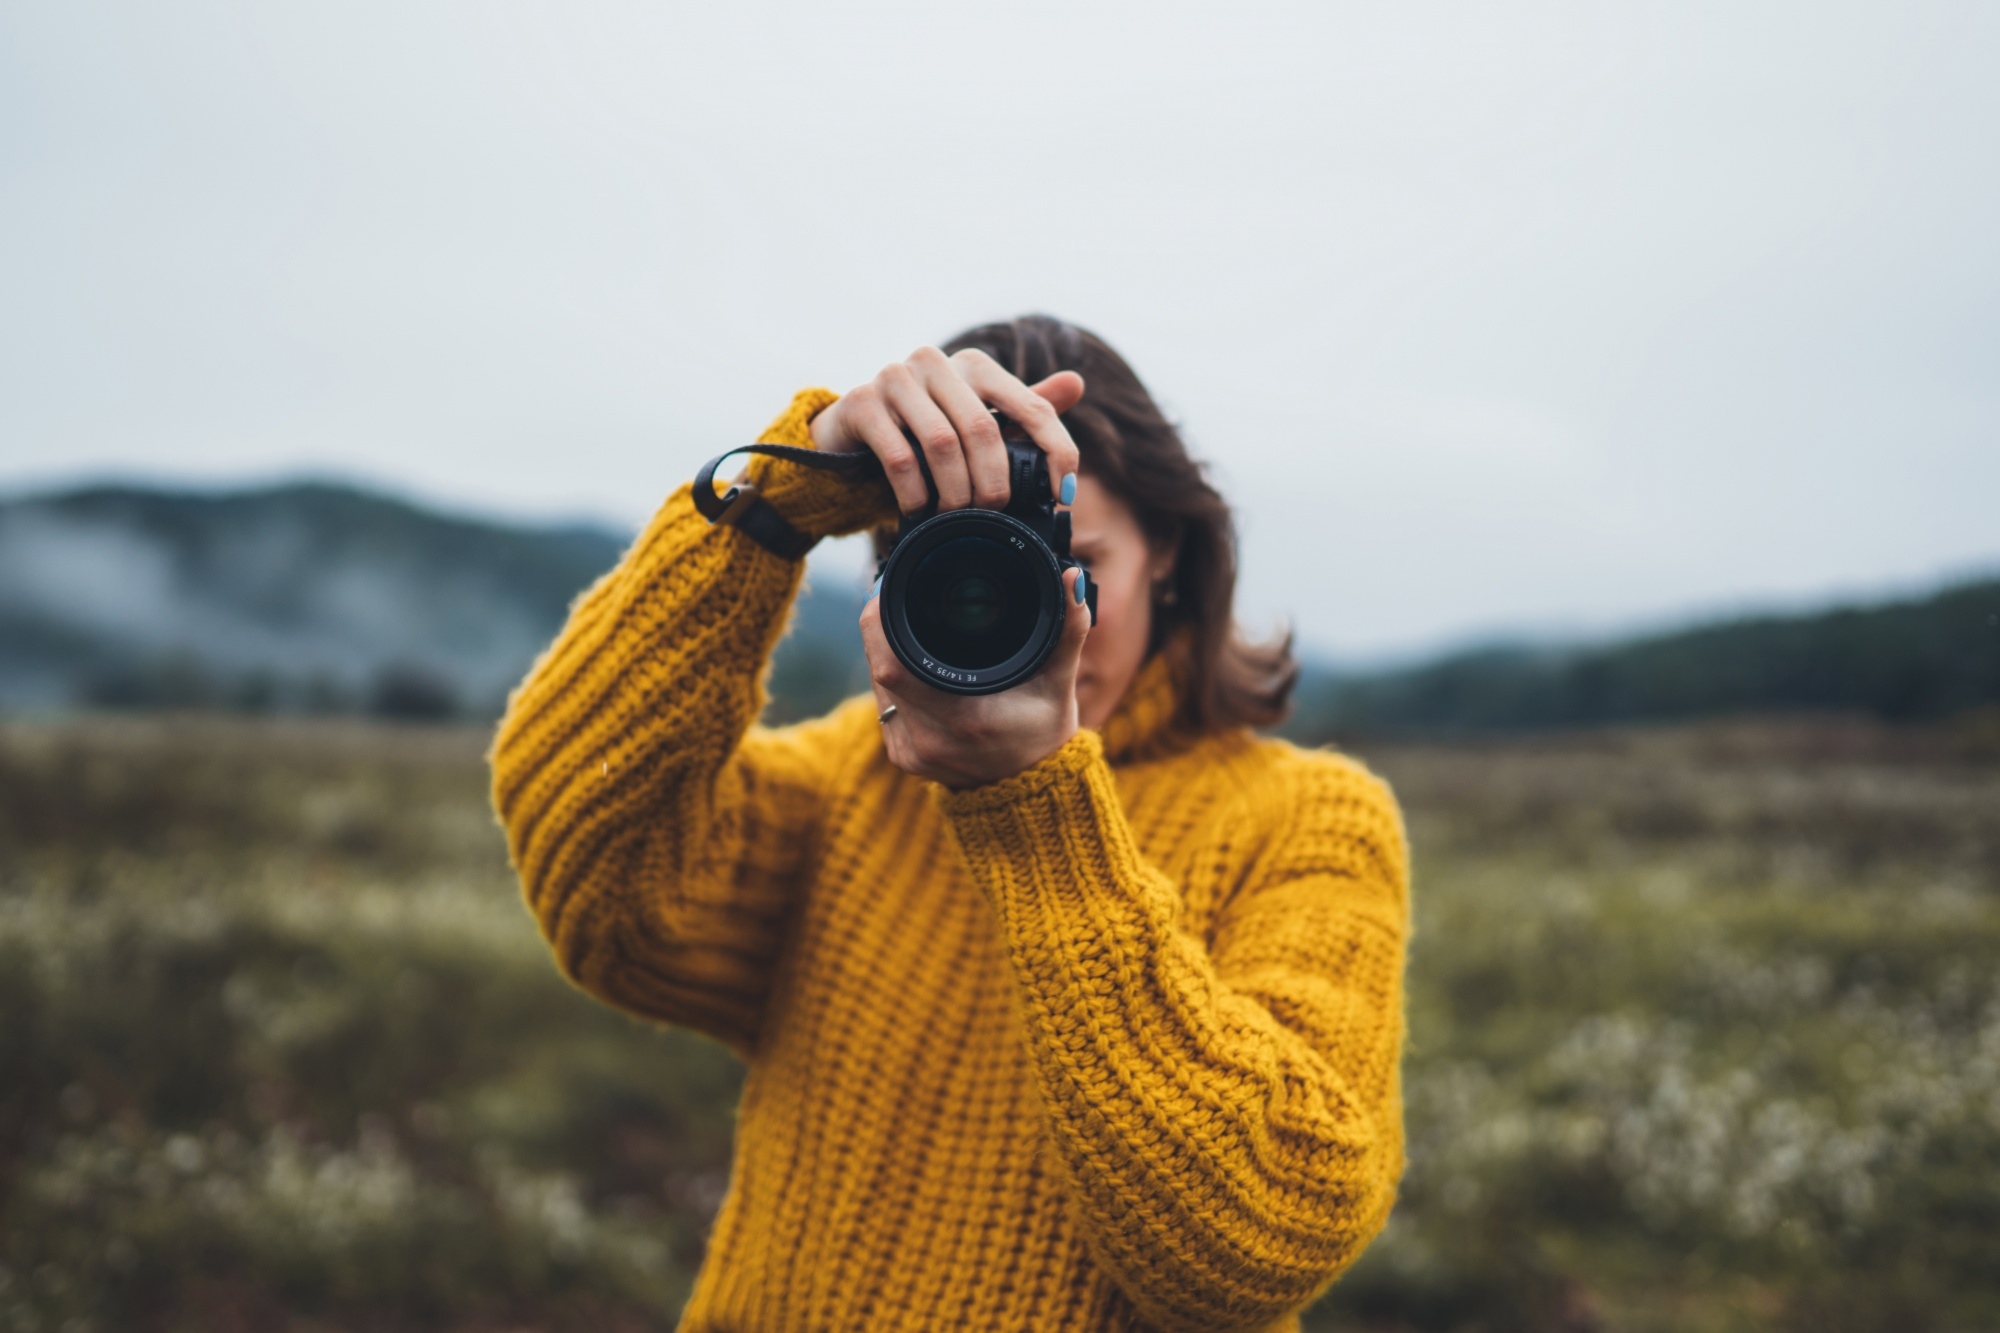 better sex after menopause, Woman in yellow sweater with camera in field with moutain